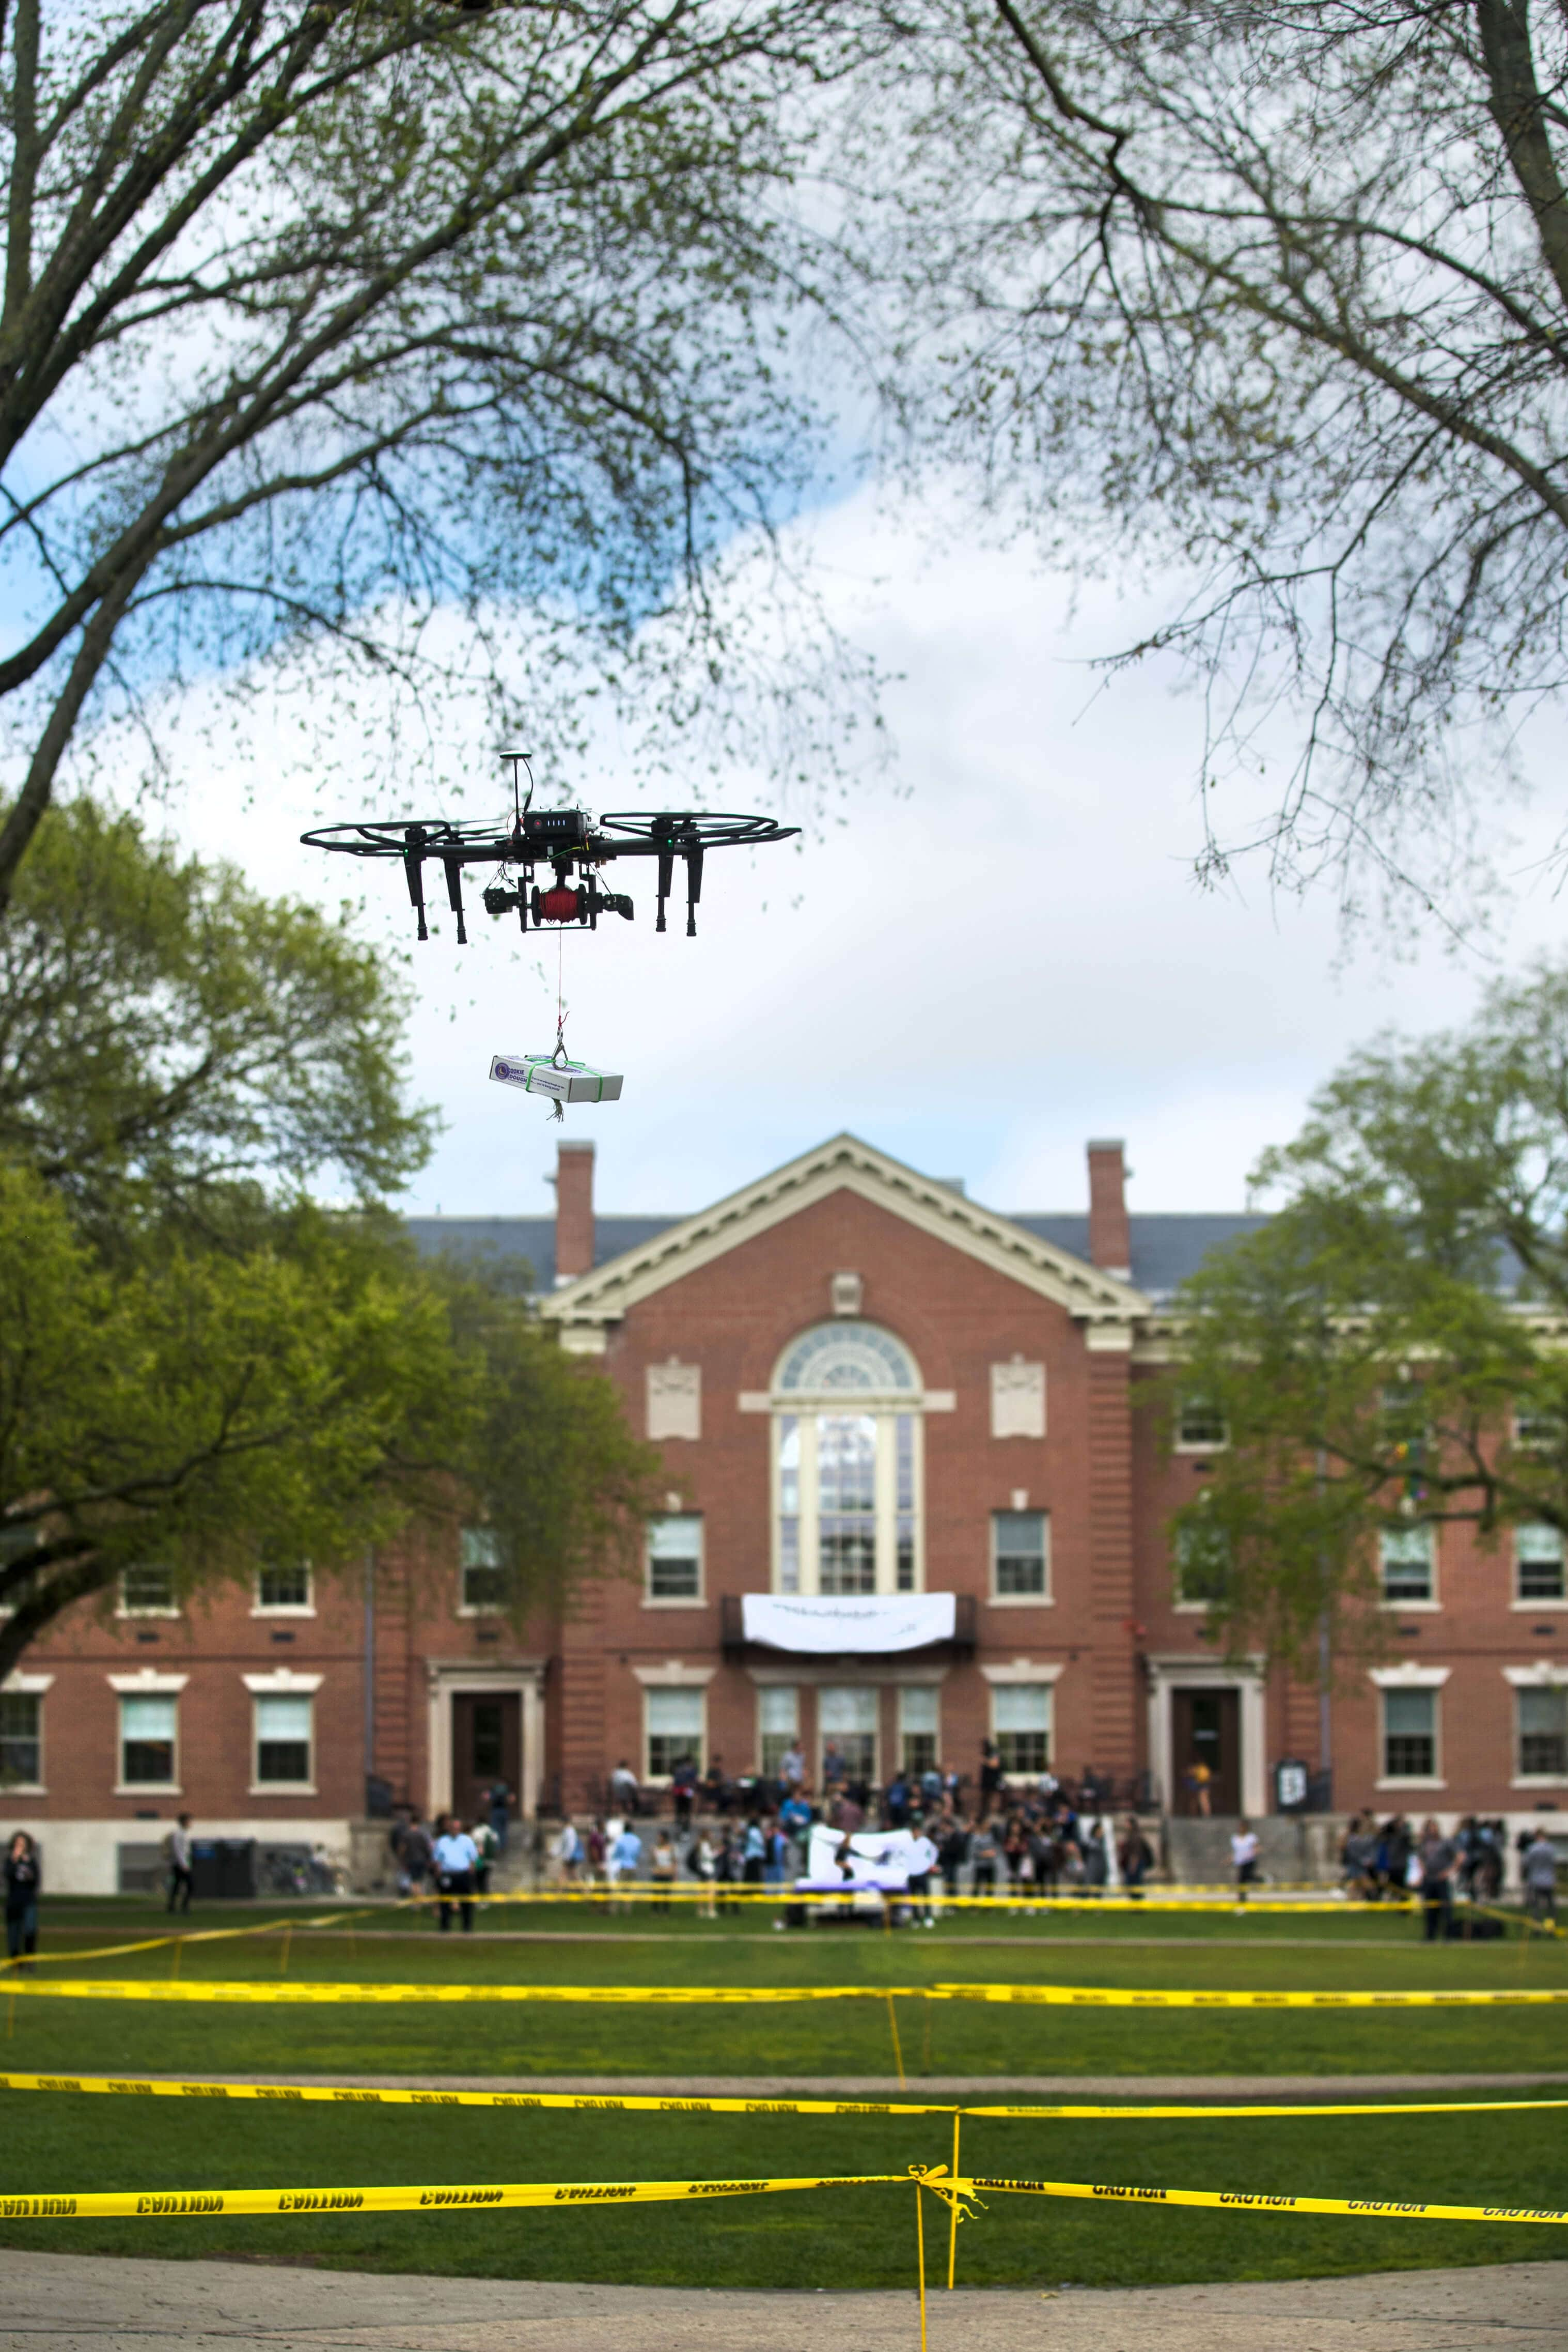 drone-delivery-cookies Brown University Students Undertake Cookie Drone Delivery